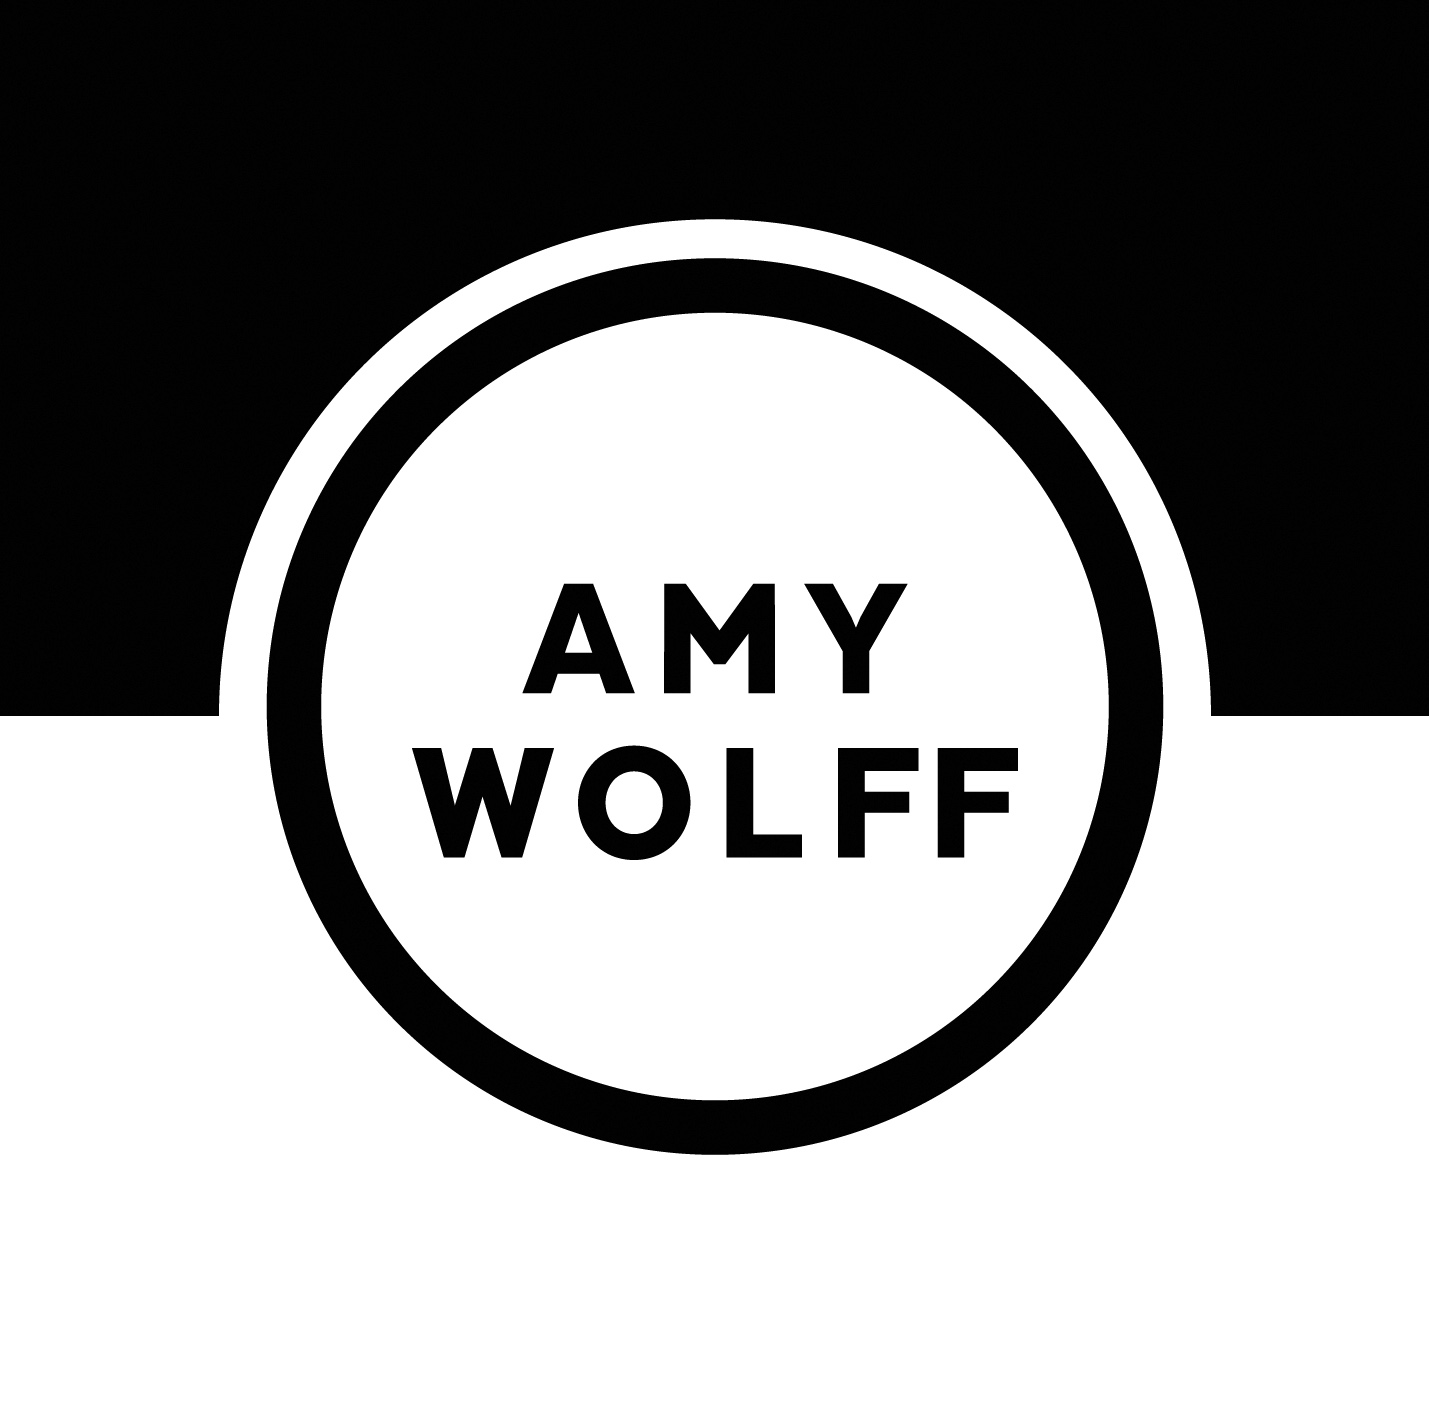 Amy Wolff